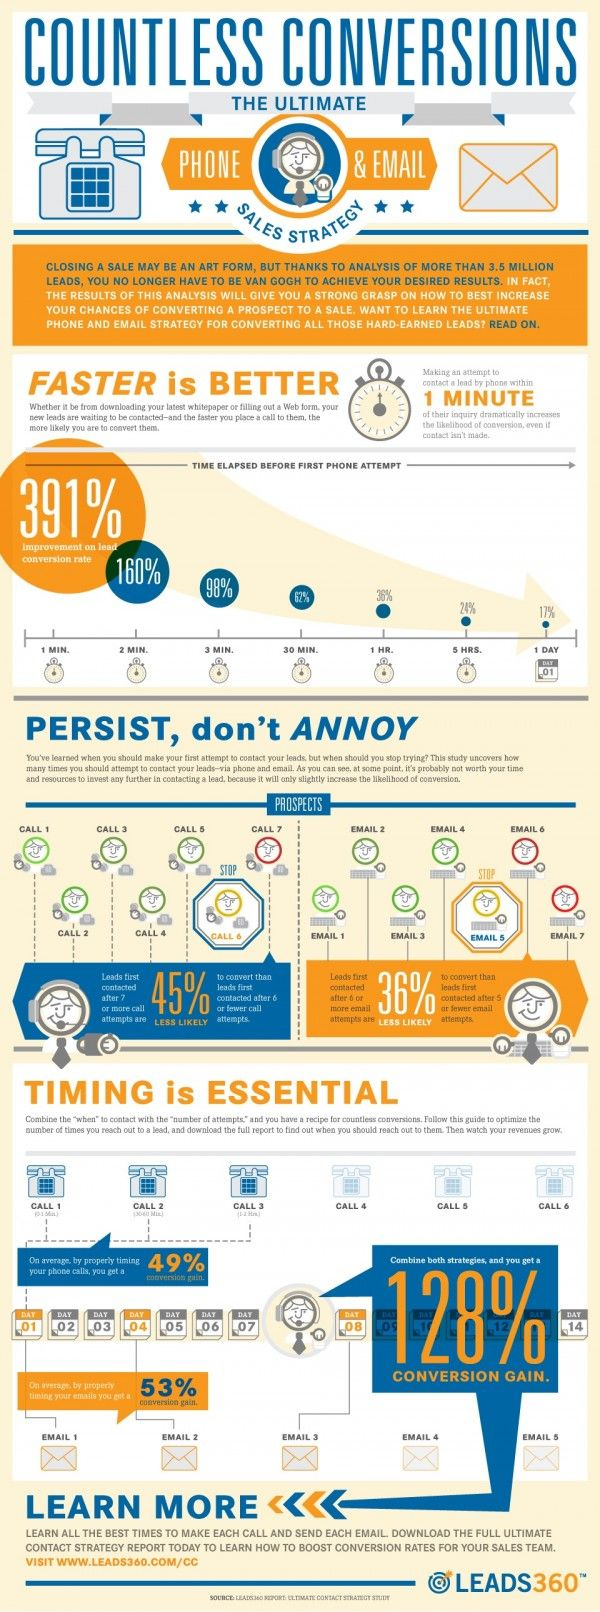 best facts images on pinterest info graphics infographic and